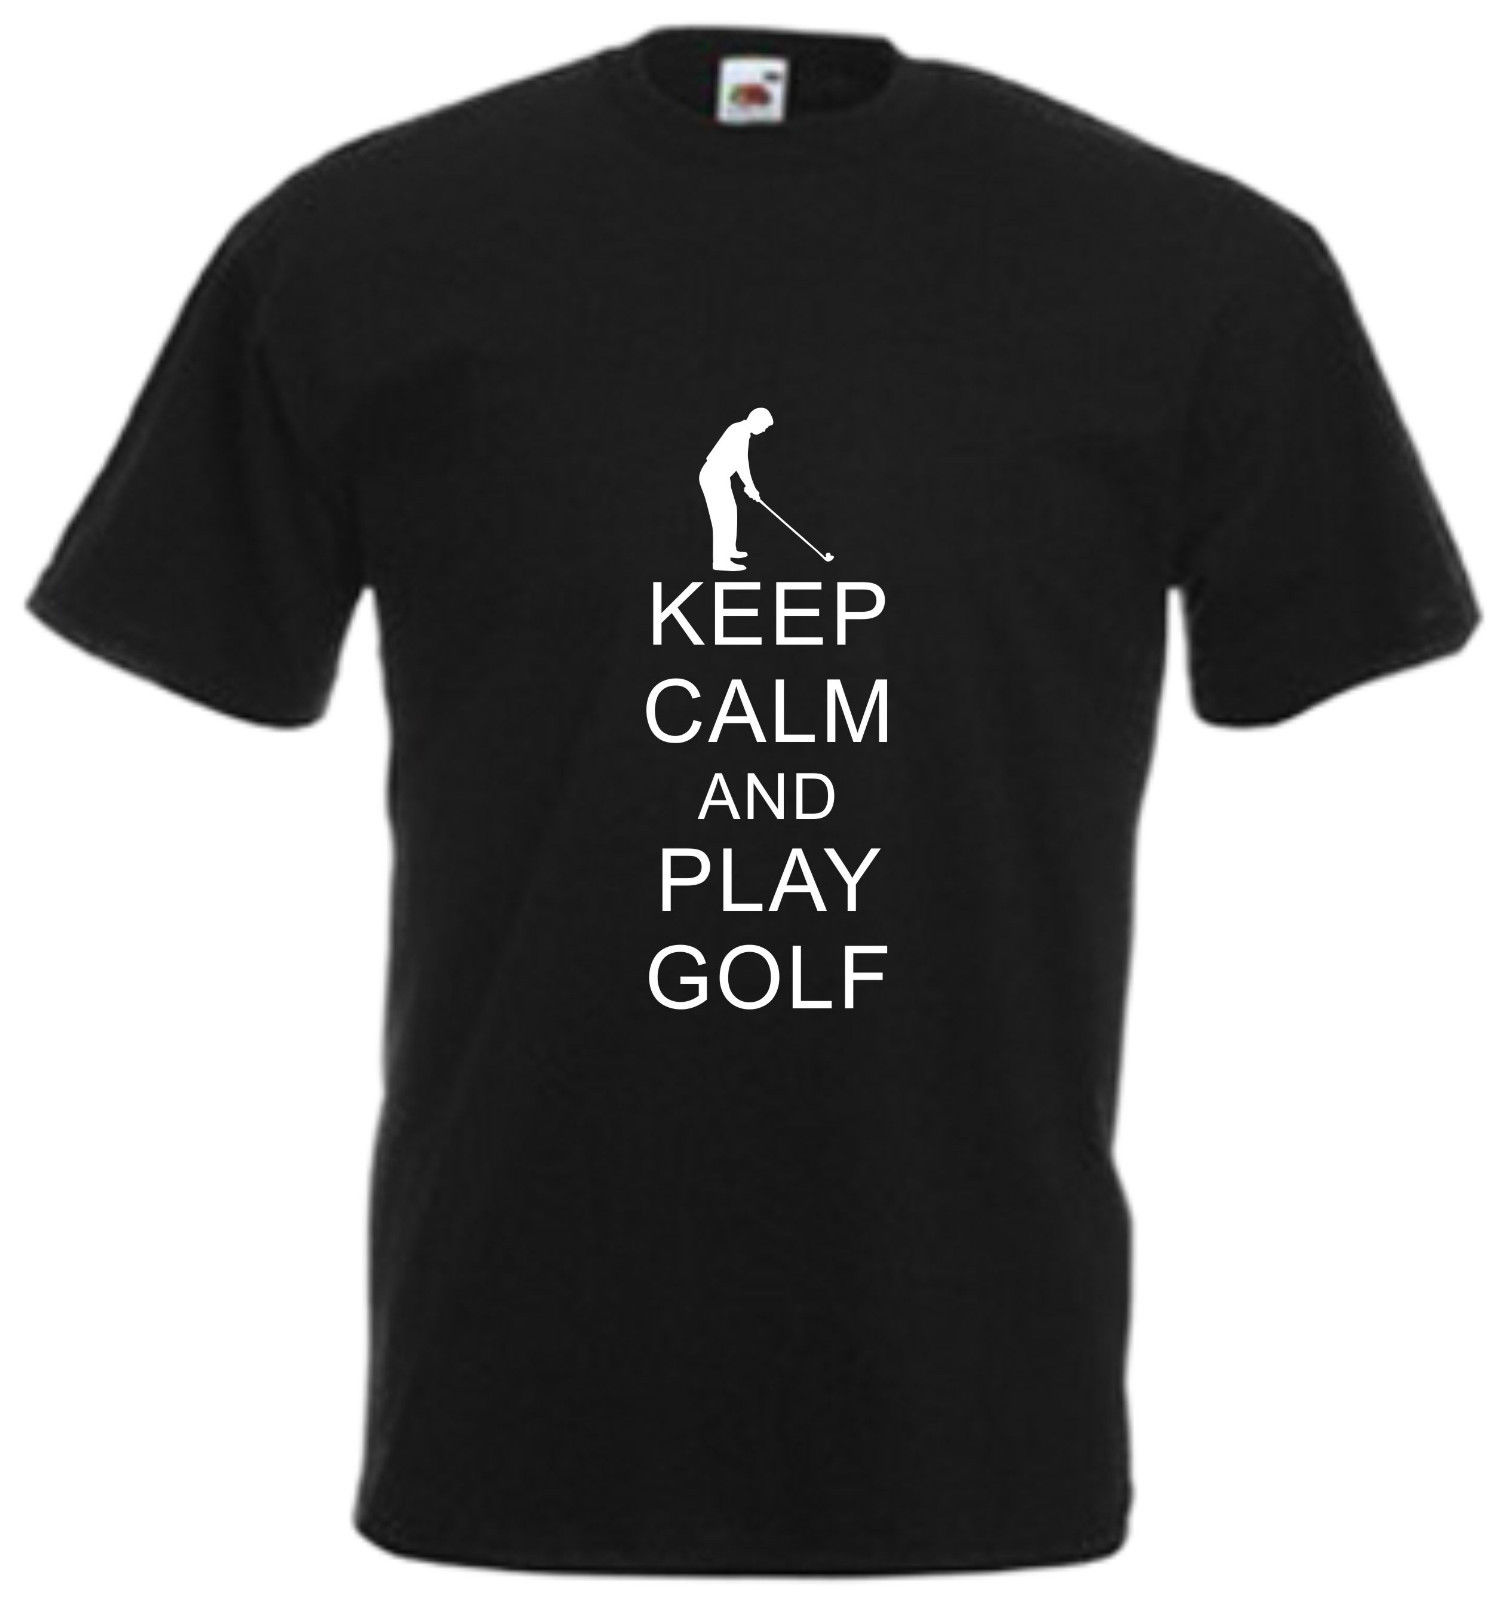 Funny Keep Calm And Play Golfer T Shirt Funny Golferer Tee Gift Top Golferer Xmas Present Summer Style T Shirt